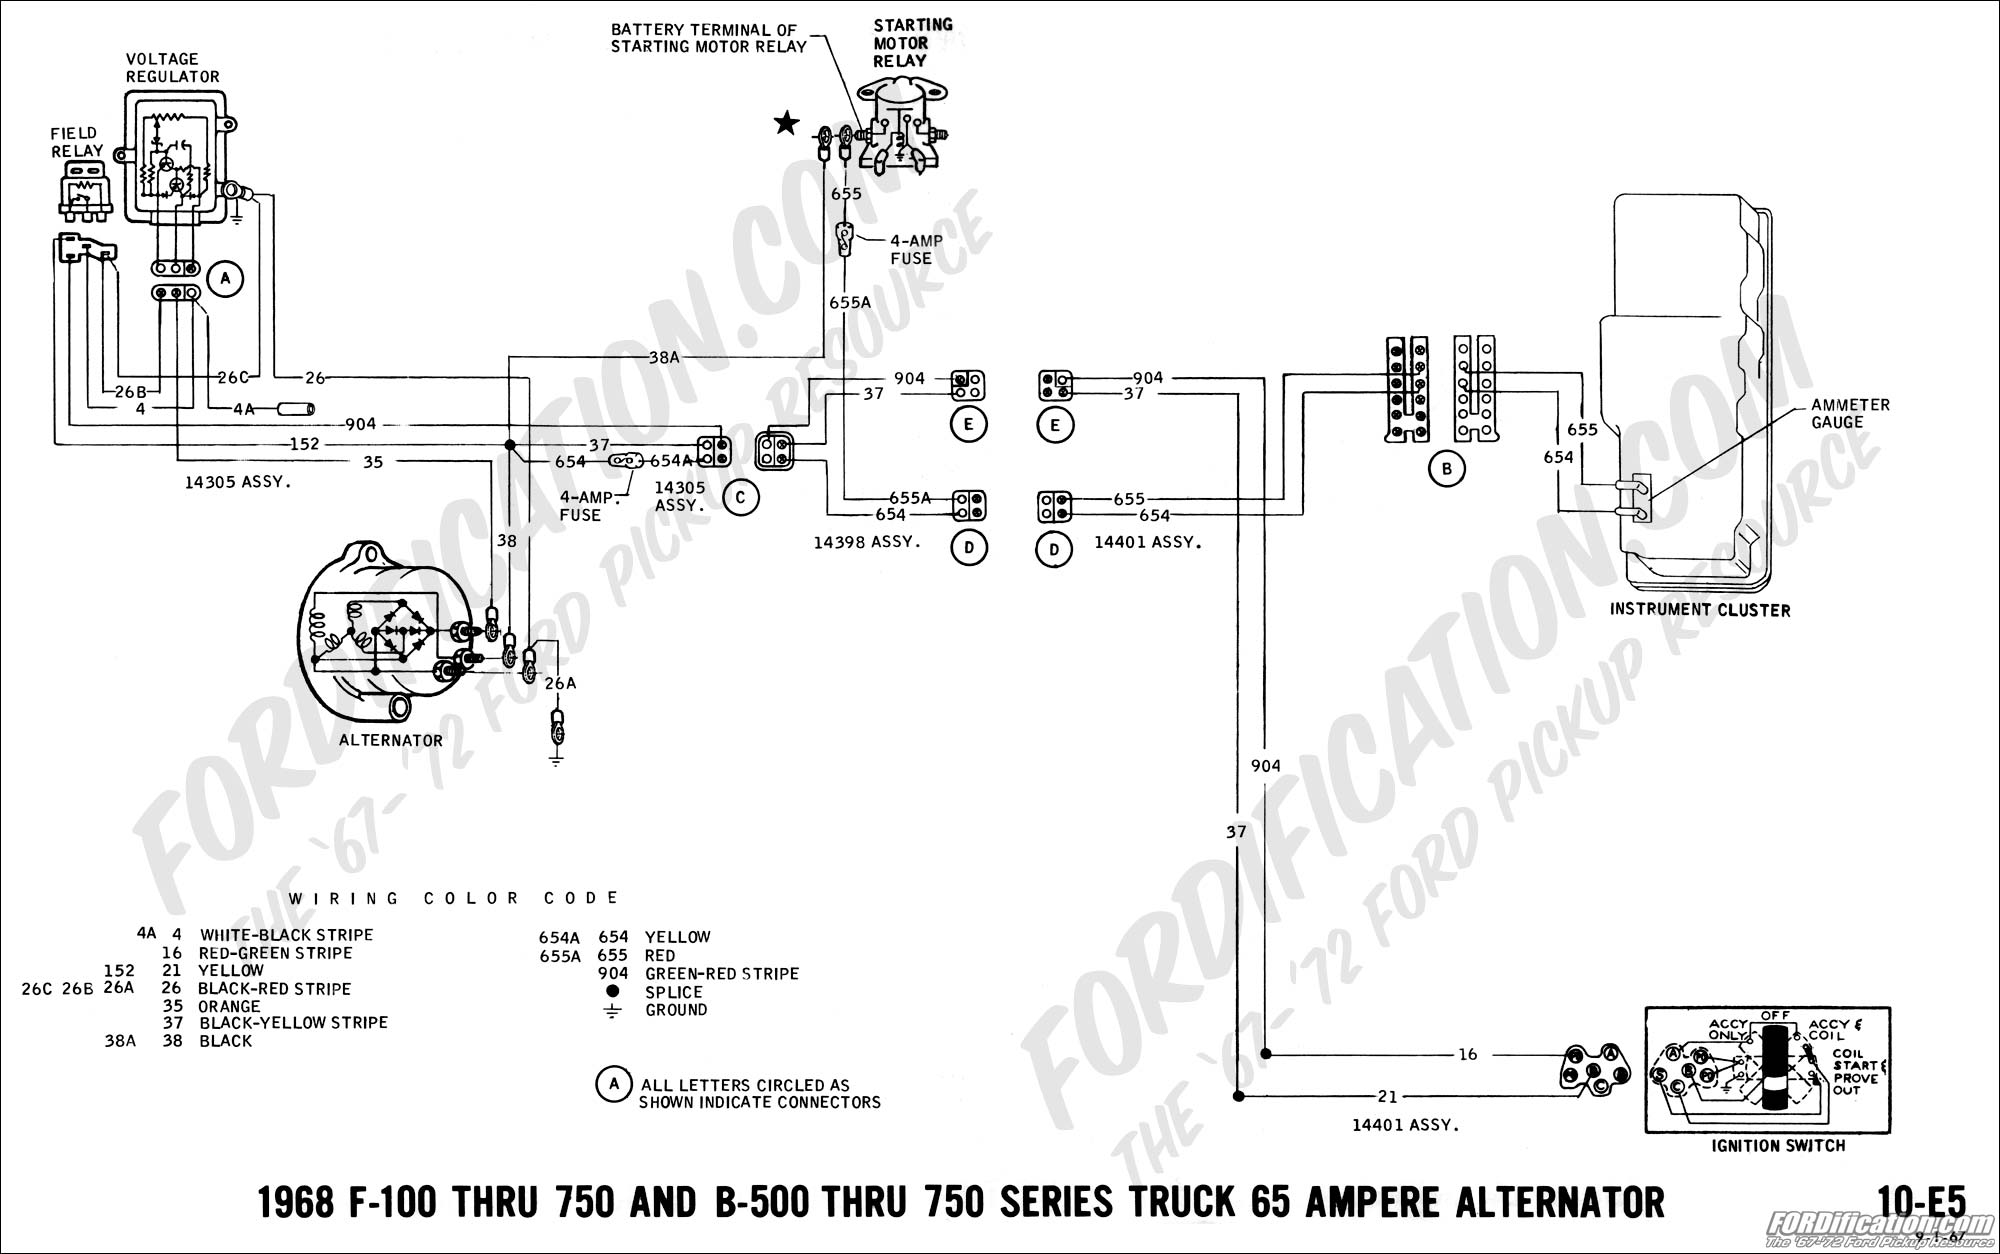 68 07 f700 ford diesel alternator wiring dia 100 images 89 ford f700 ford 2g alternator wiring diagram at webbmarketing.co